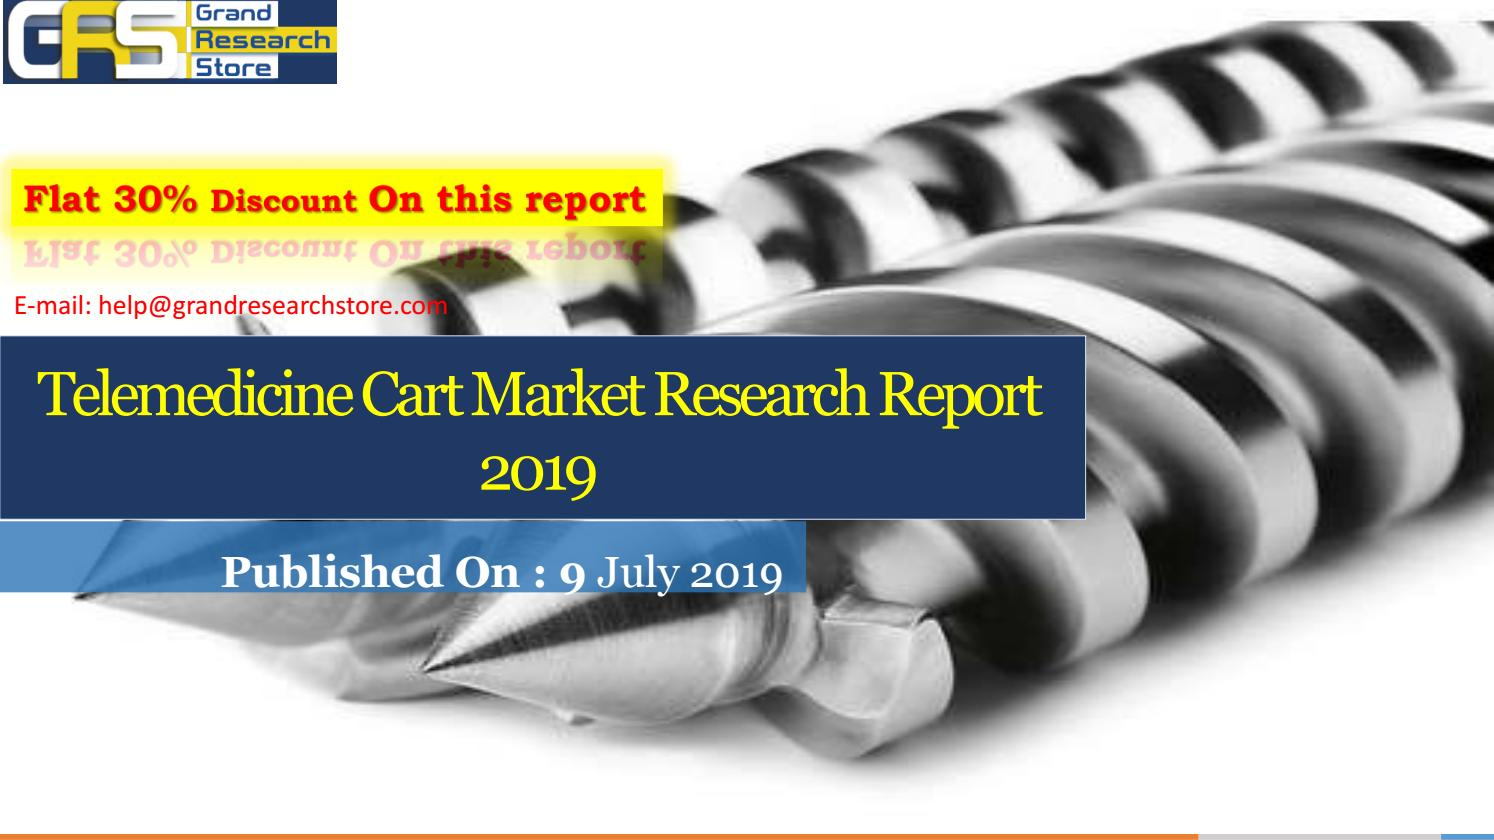 Telemedicine cart market research report 2019 by